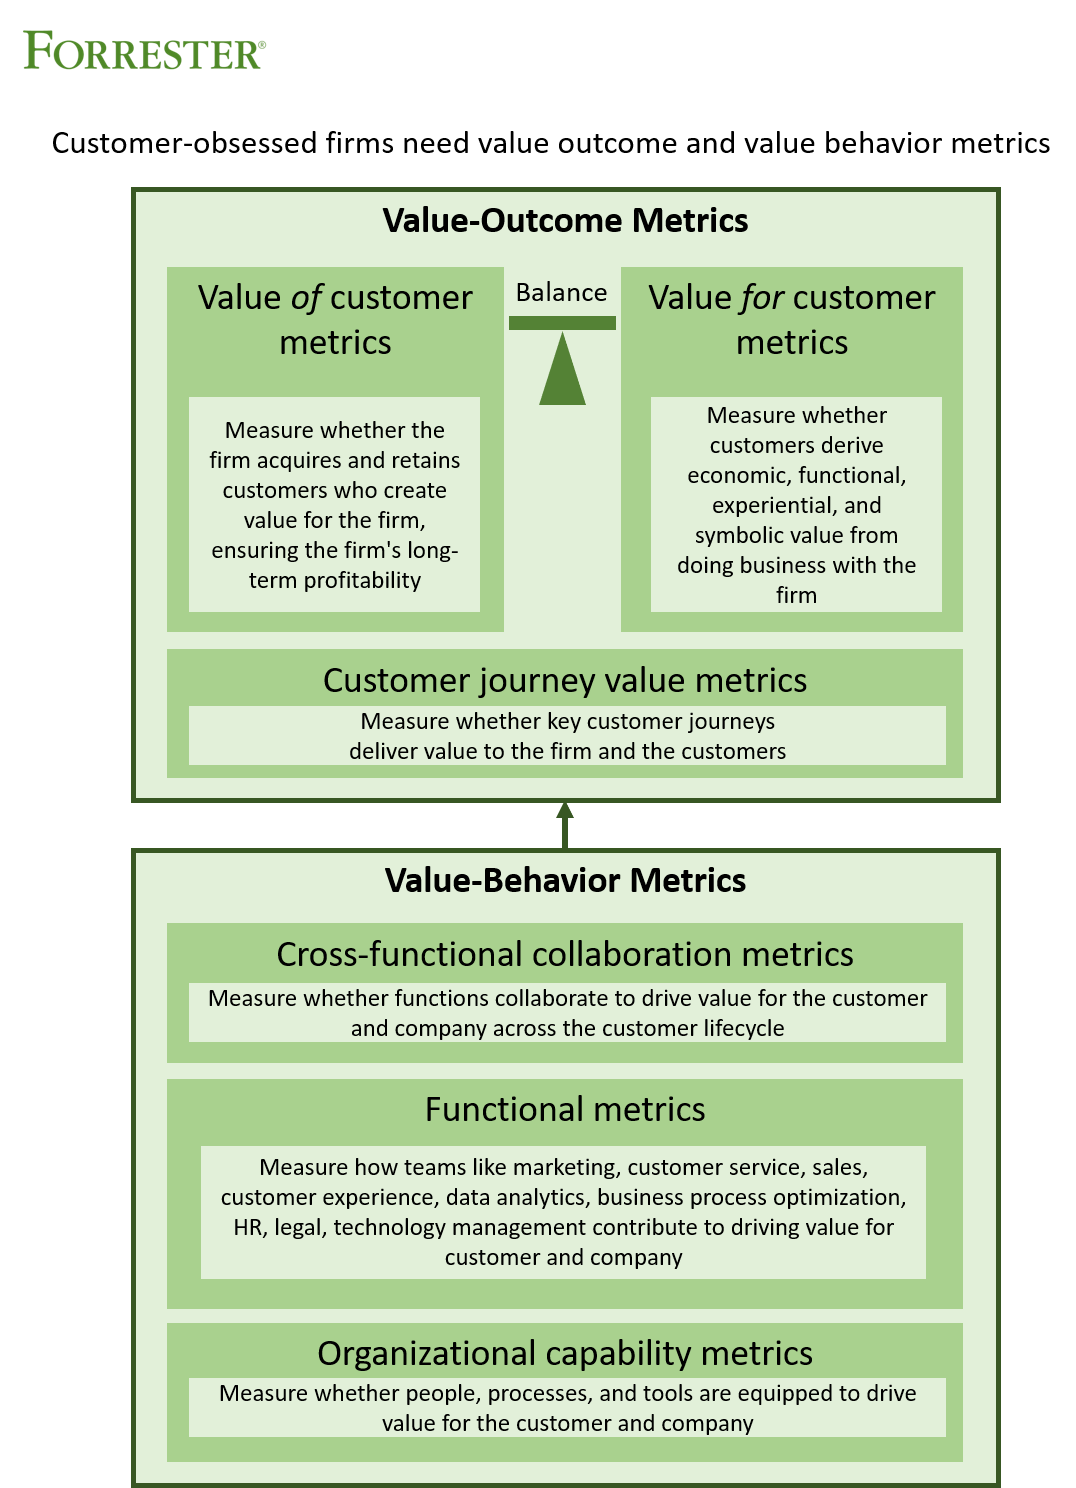 Companies need metrics that measure value behaviors (including functional contributions, cross-functional contributions and organizational capabilities) and metrics that measure value outcomes(including customer journey value, overall value for customer, and overall value of customer)